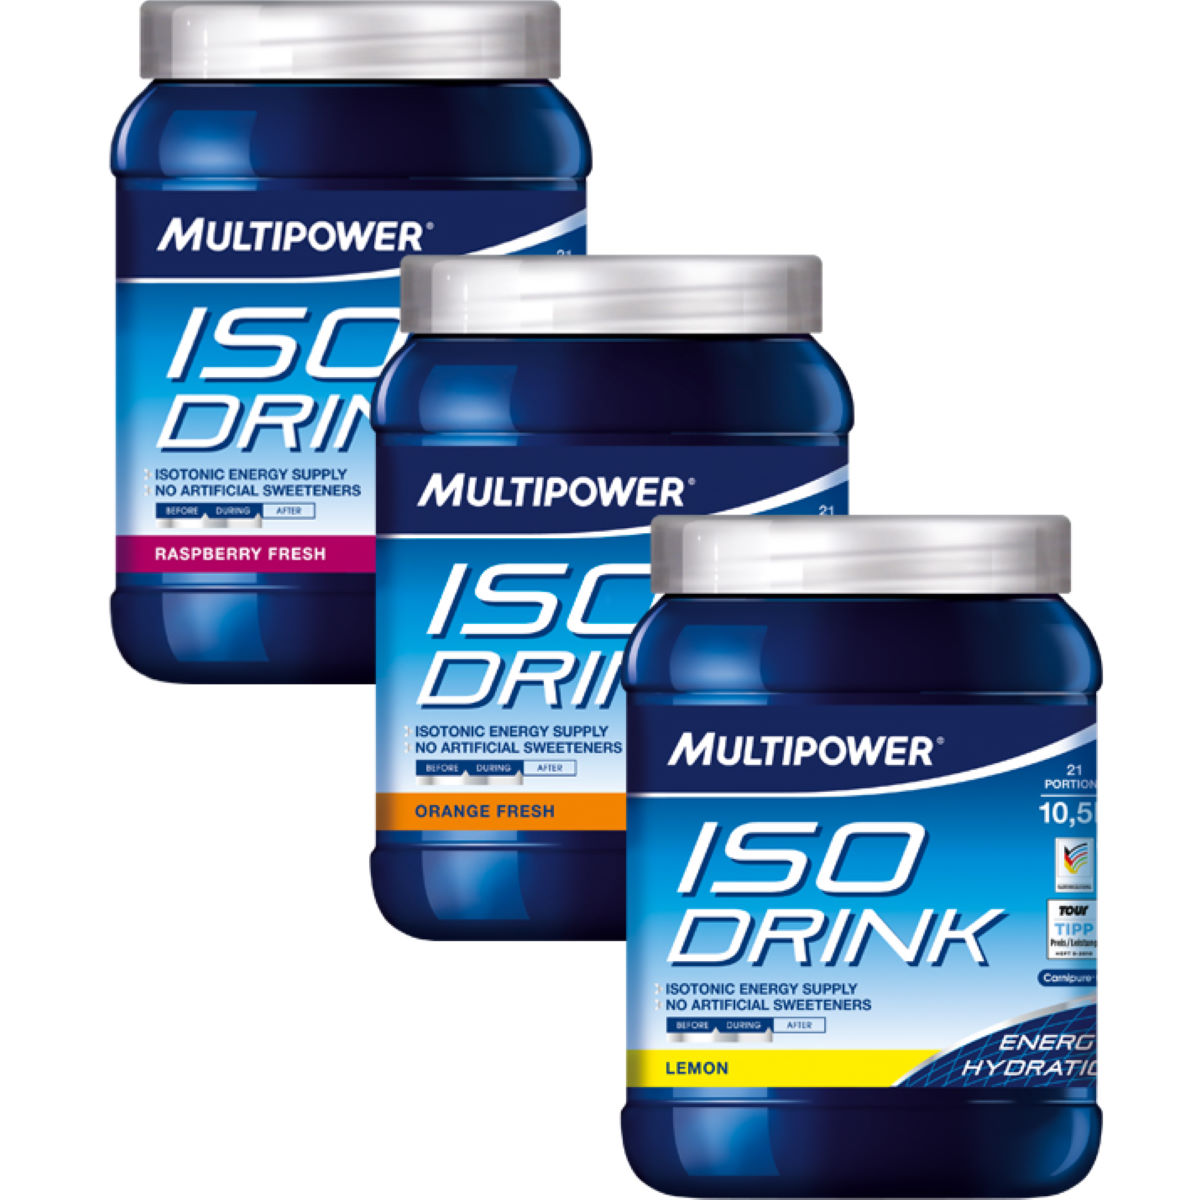 Multipower Iso Drink 735g